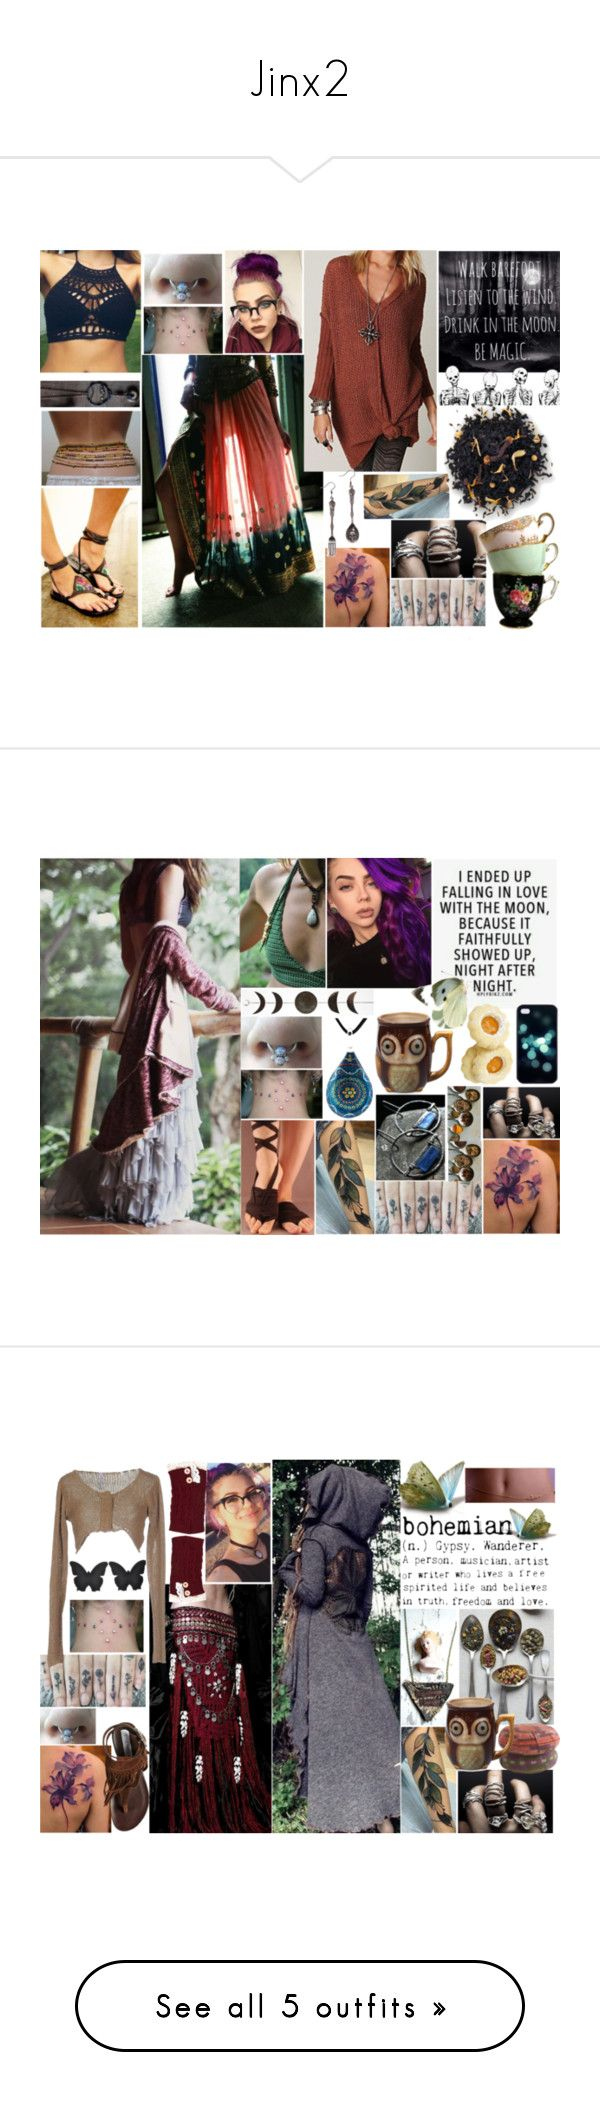 """""""Jinx2"""" by thwgi ❤ liked on Polyvore featuring By Charlotte, Alexander McQueen, The Tao of Tea, The Rogue + The Wolf, Pianurastudio, Steve Madden, Chloé, Miss Selfridge, Free People and Gimmicks"""